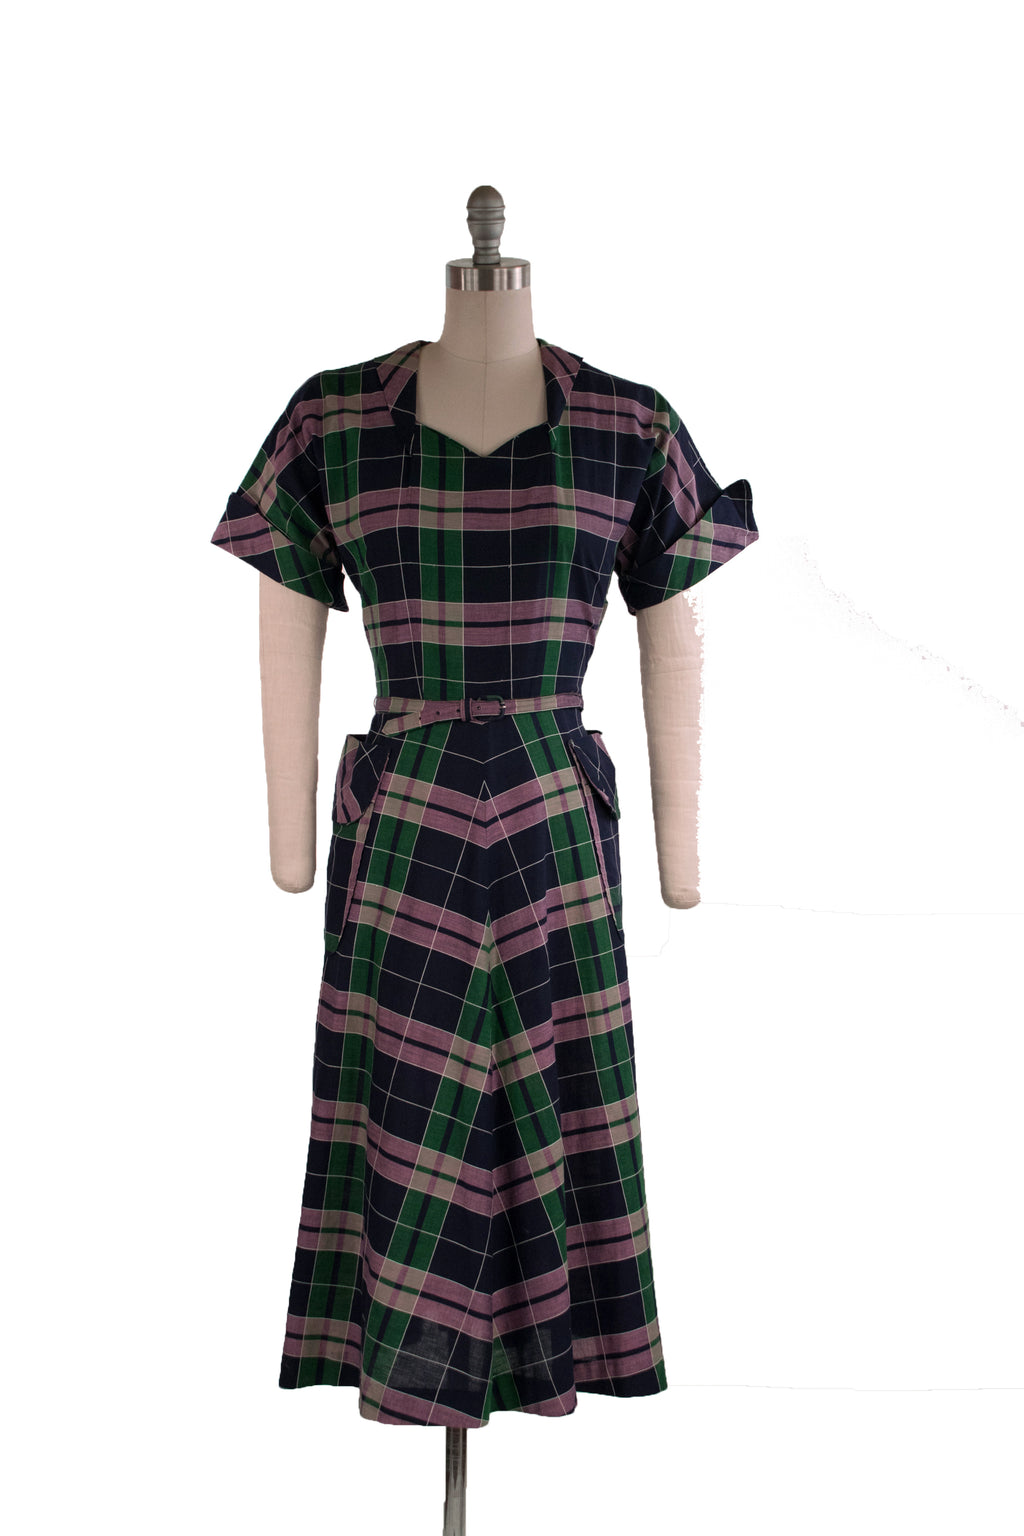 Rich c. 1949 Plaid Day Dress of Cotton Dan River Fabric in Purple, Blue and Green